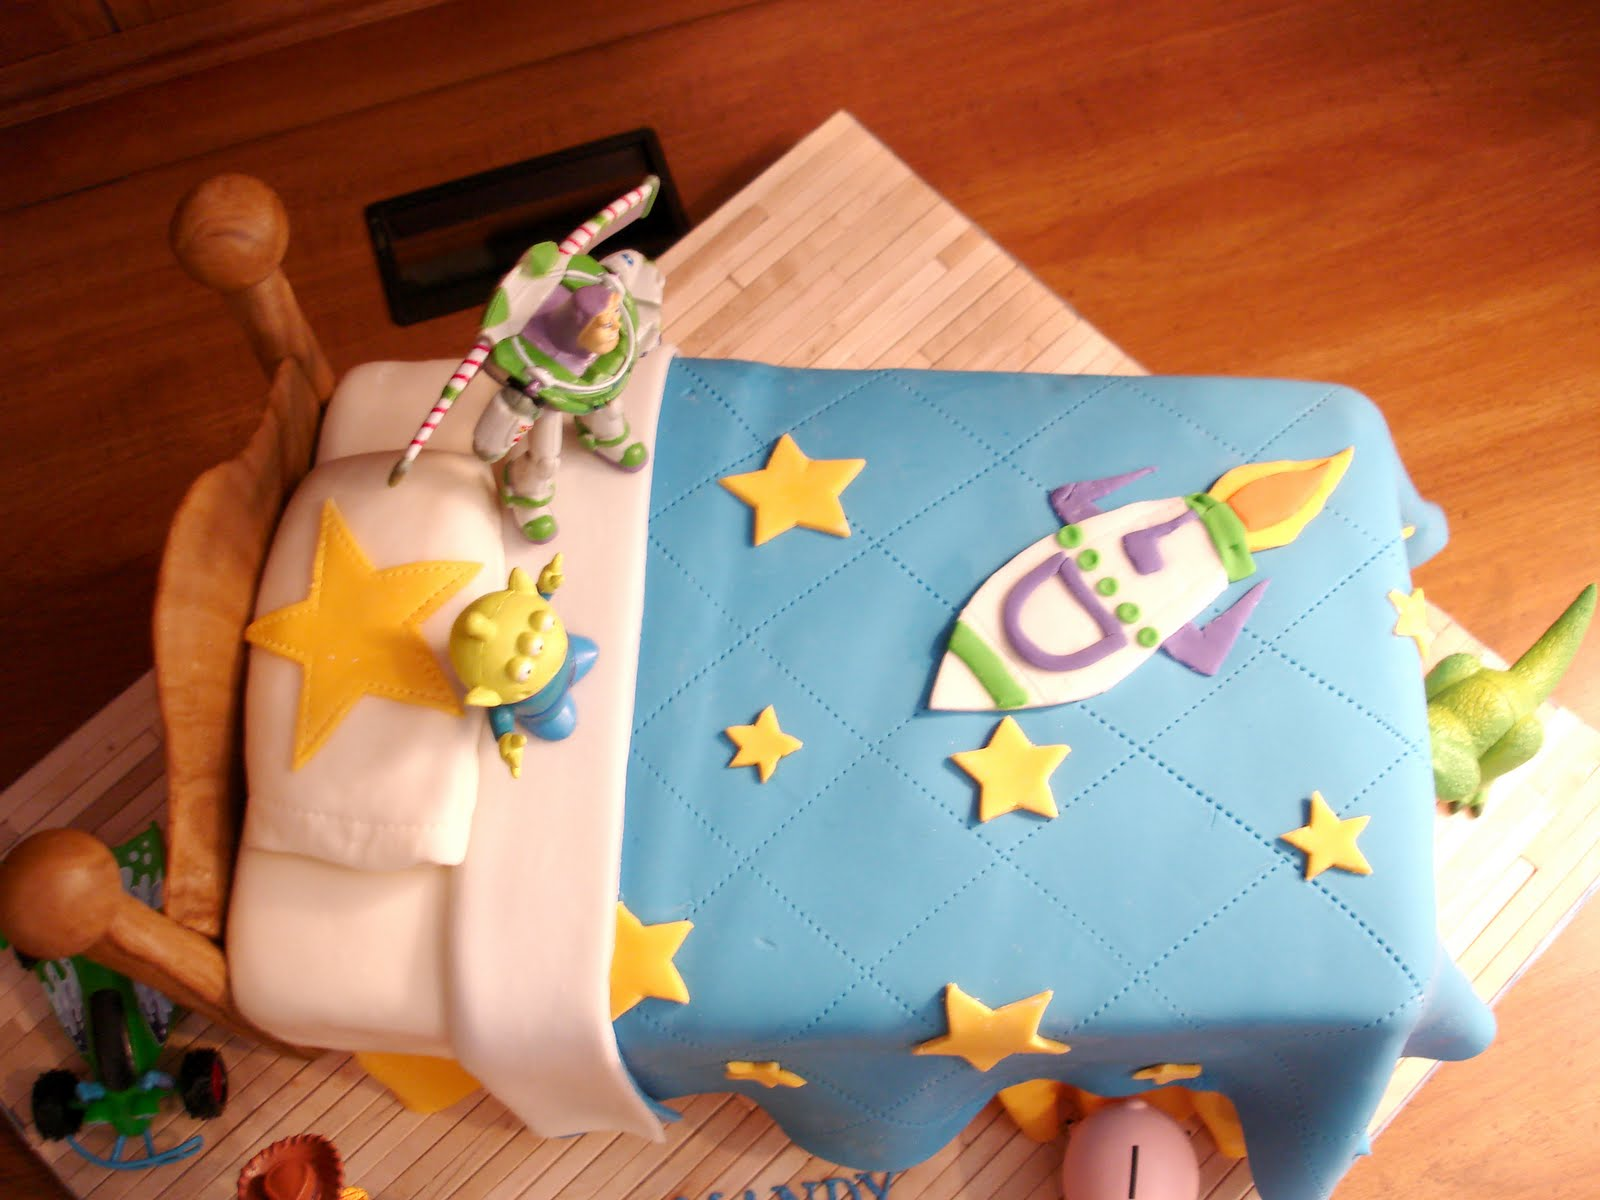 Serendipity Cake Design Toy Story Andy S Room